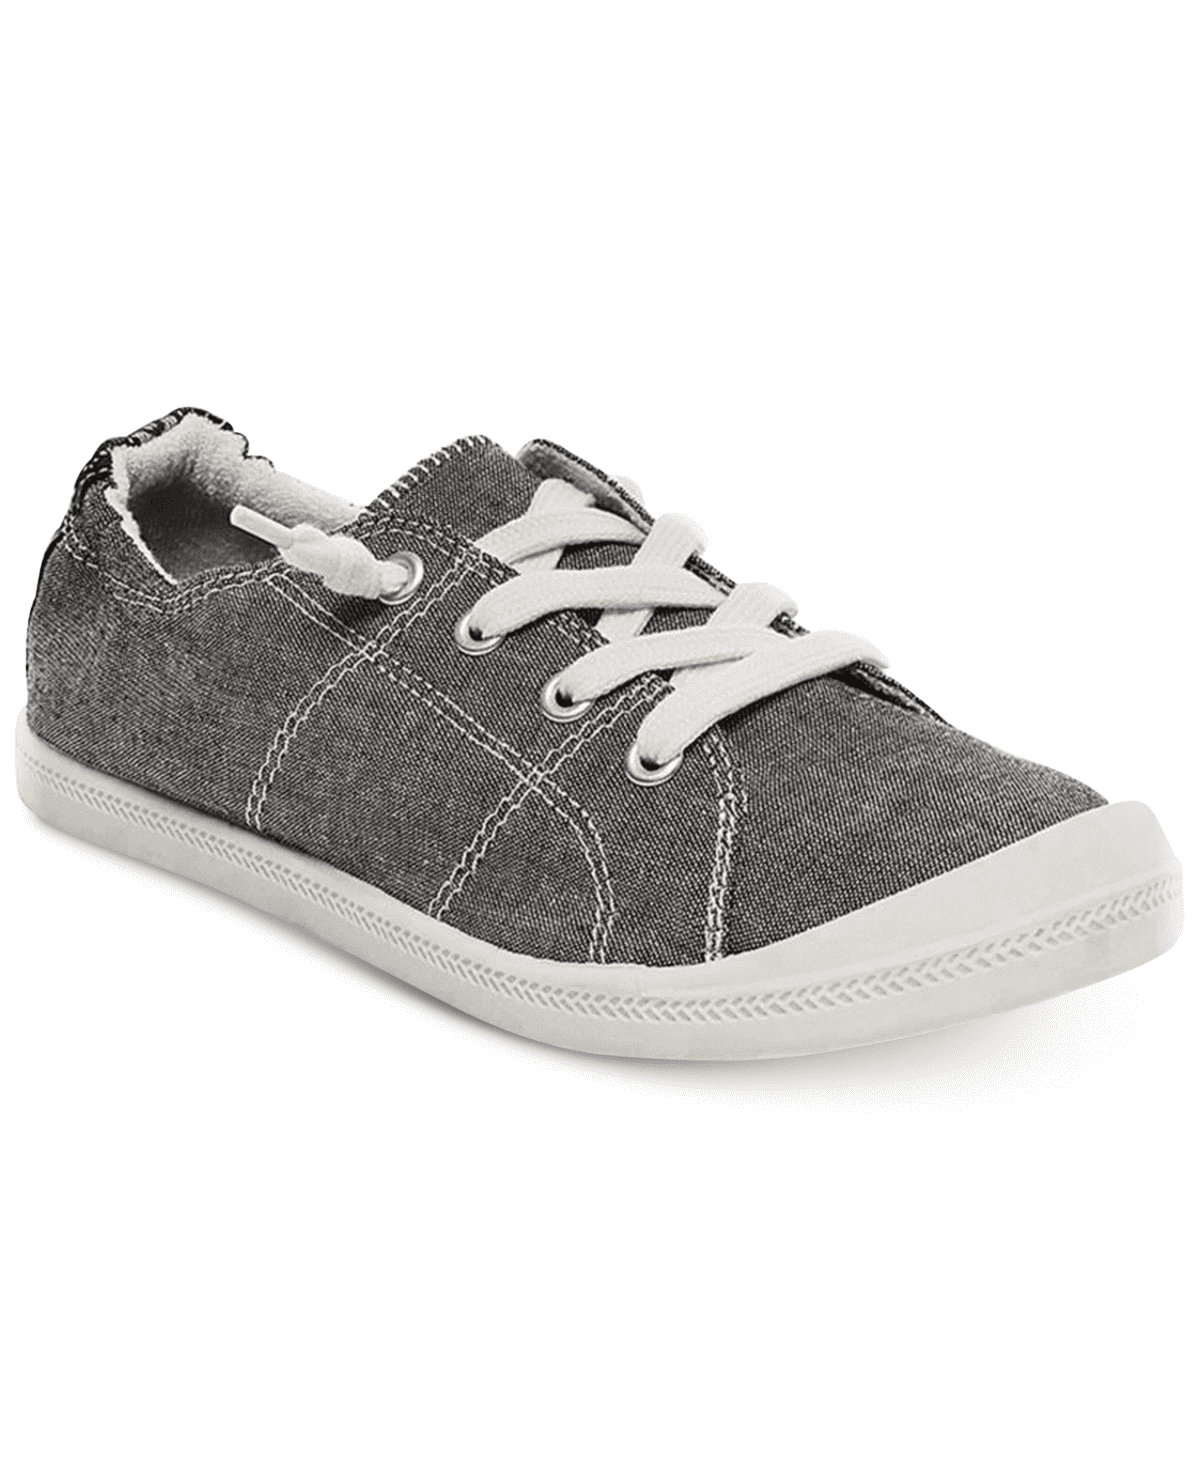 Madden Girl Women's Baailey Canvas Lace